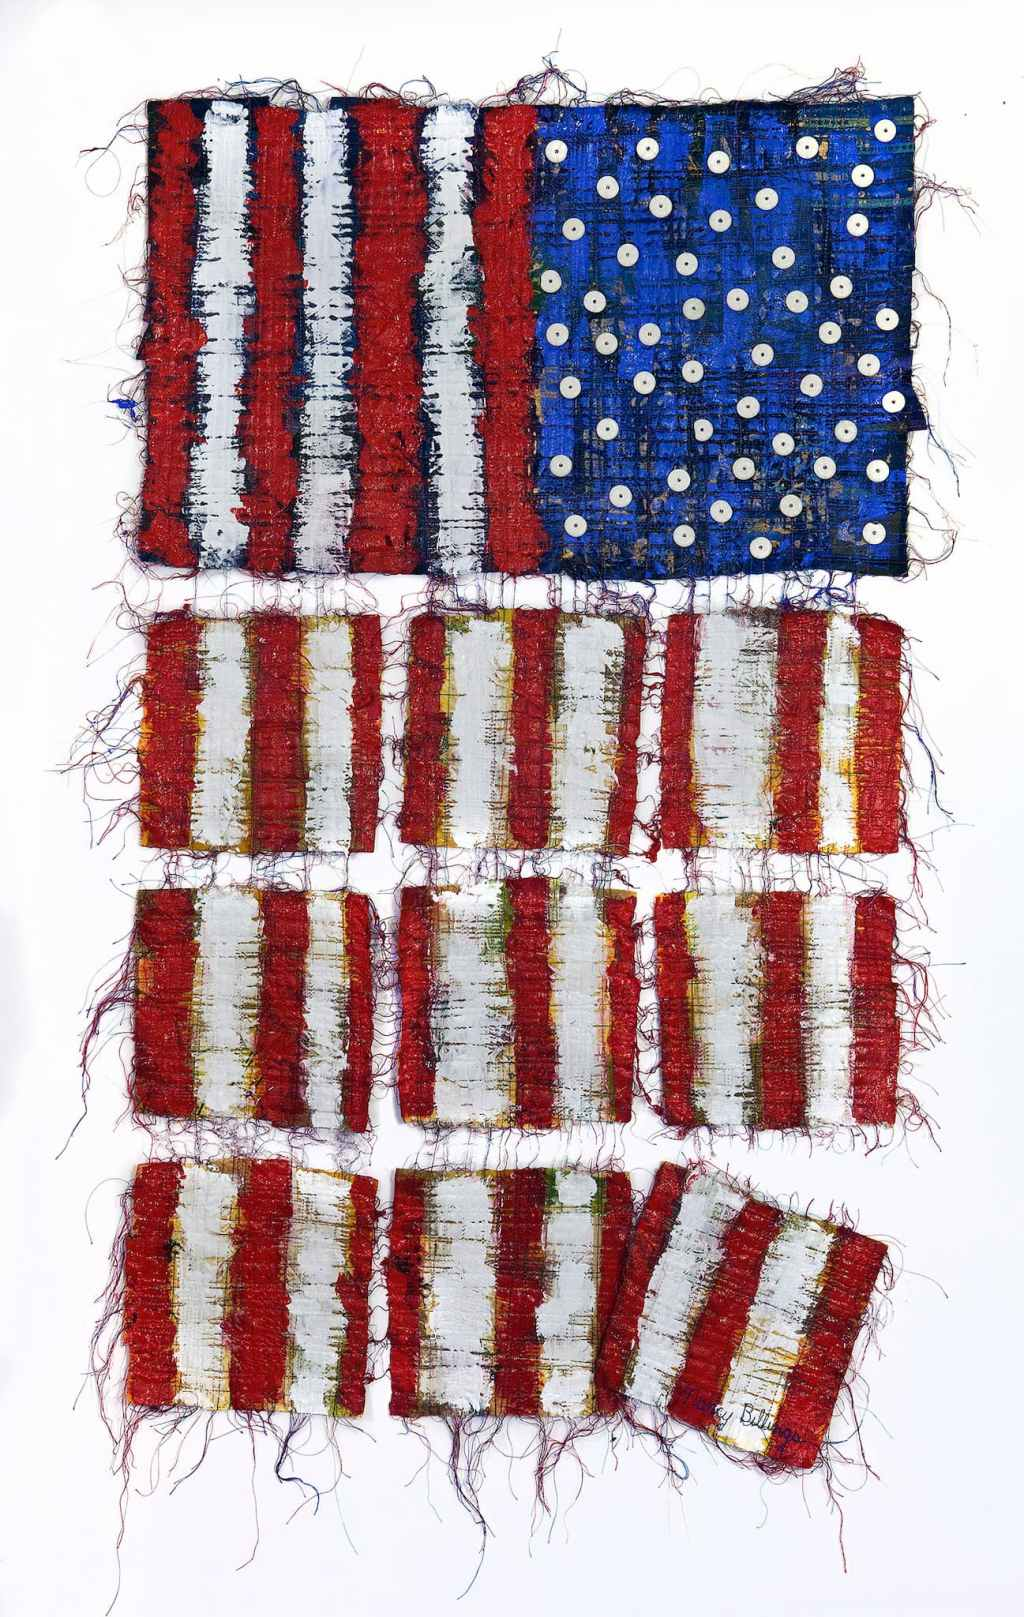 Craft in America Center, Flag Share 2020 Beyond, Nancy Billing, Democracy...Hanging By A Thread I, 2020